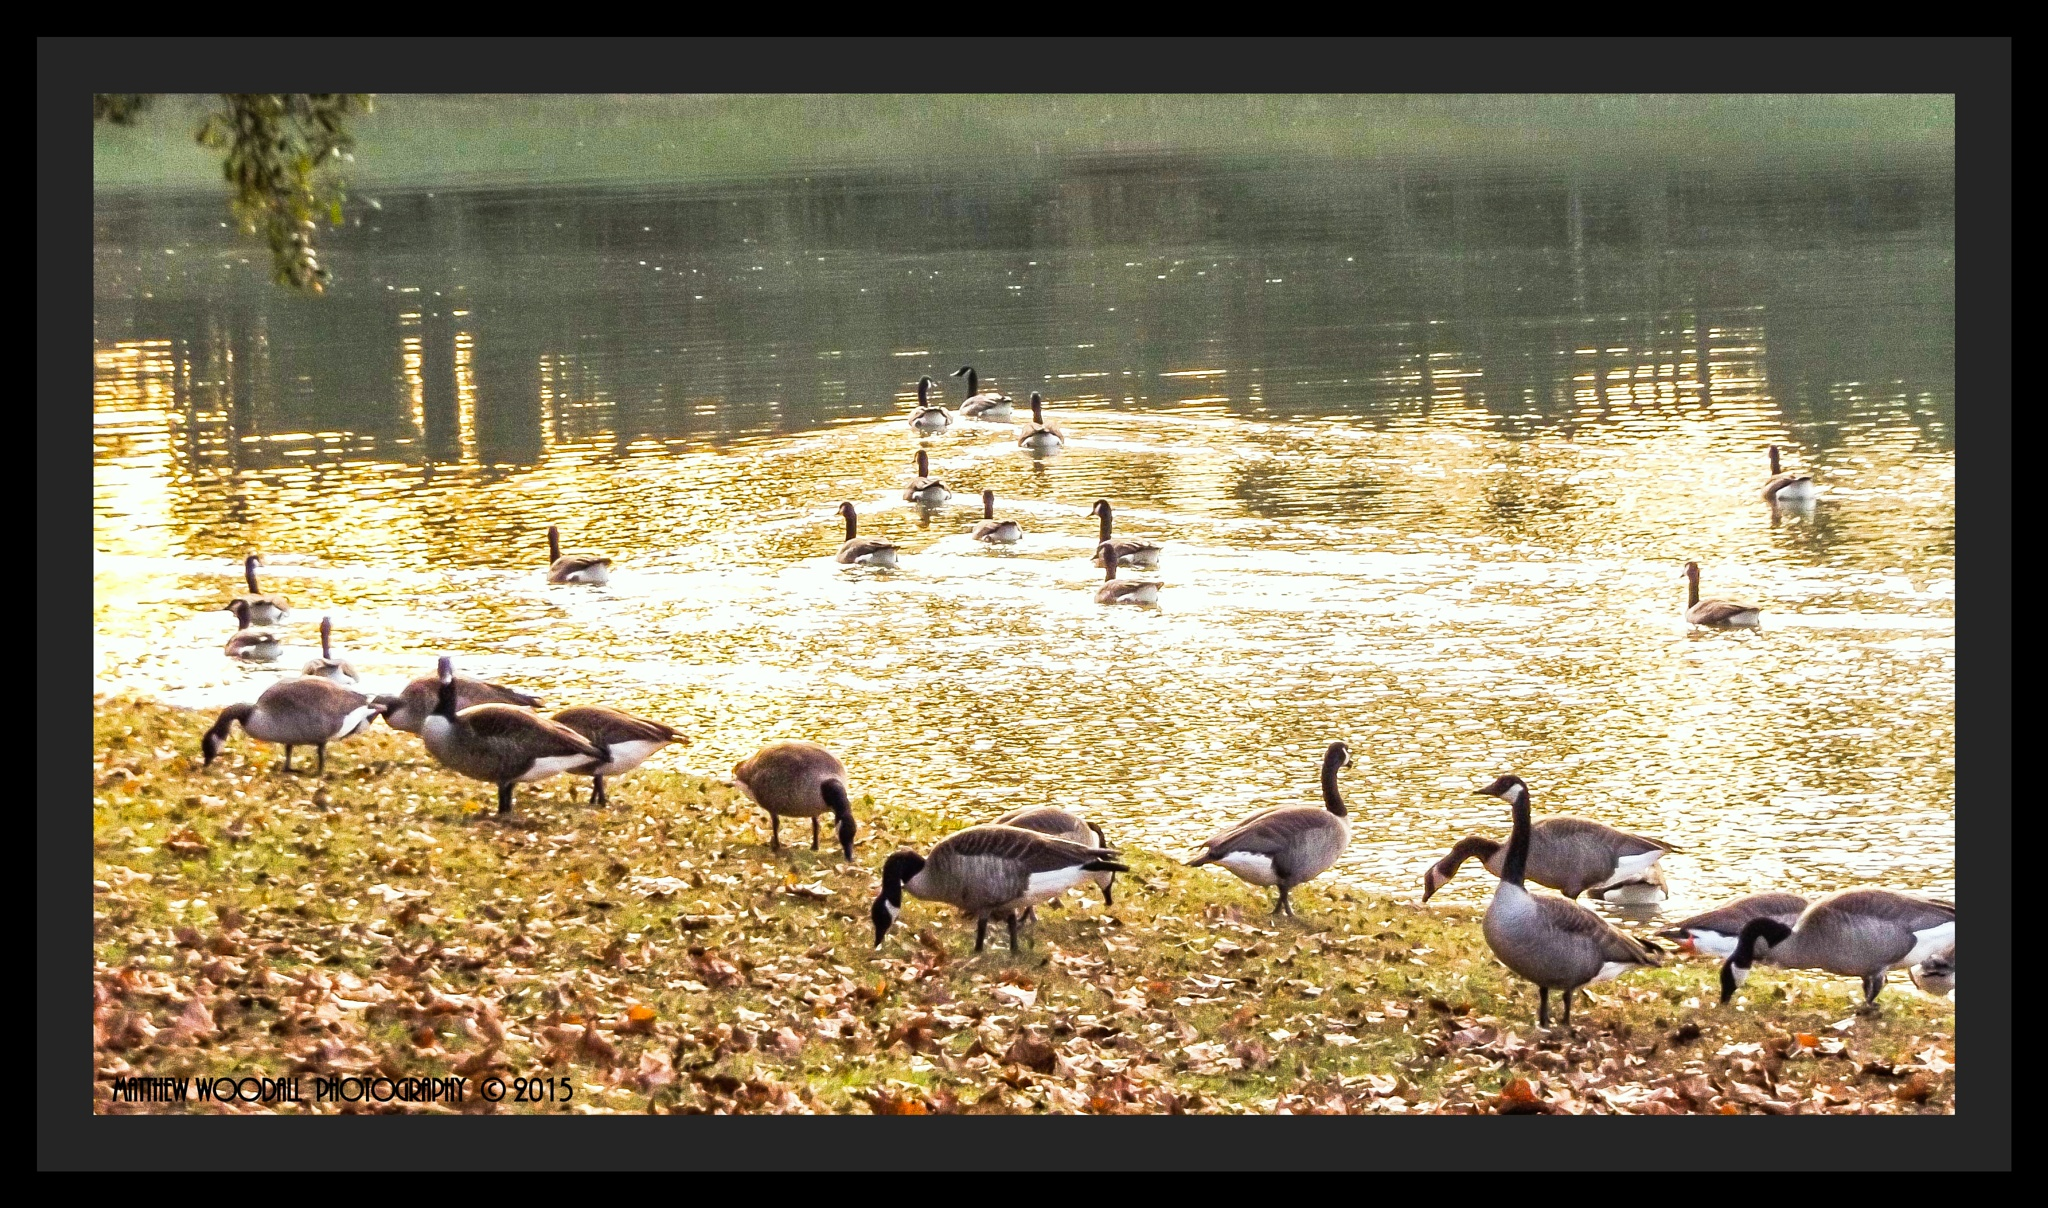 Canadian Geese enjoying the southern warmth  by Matthew Woodall